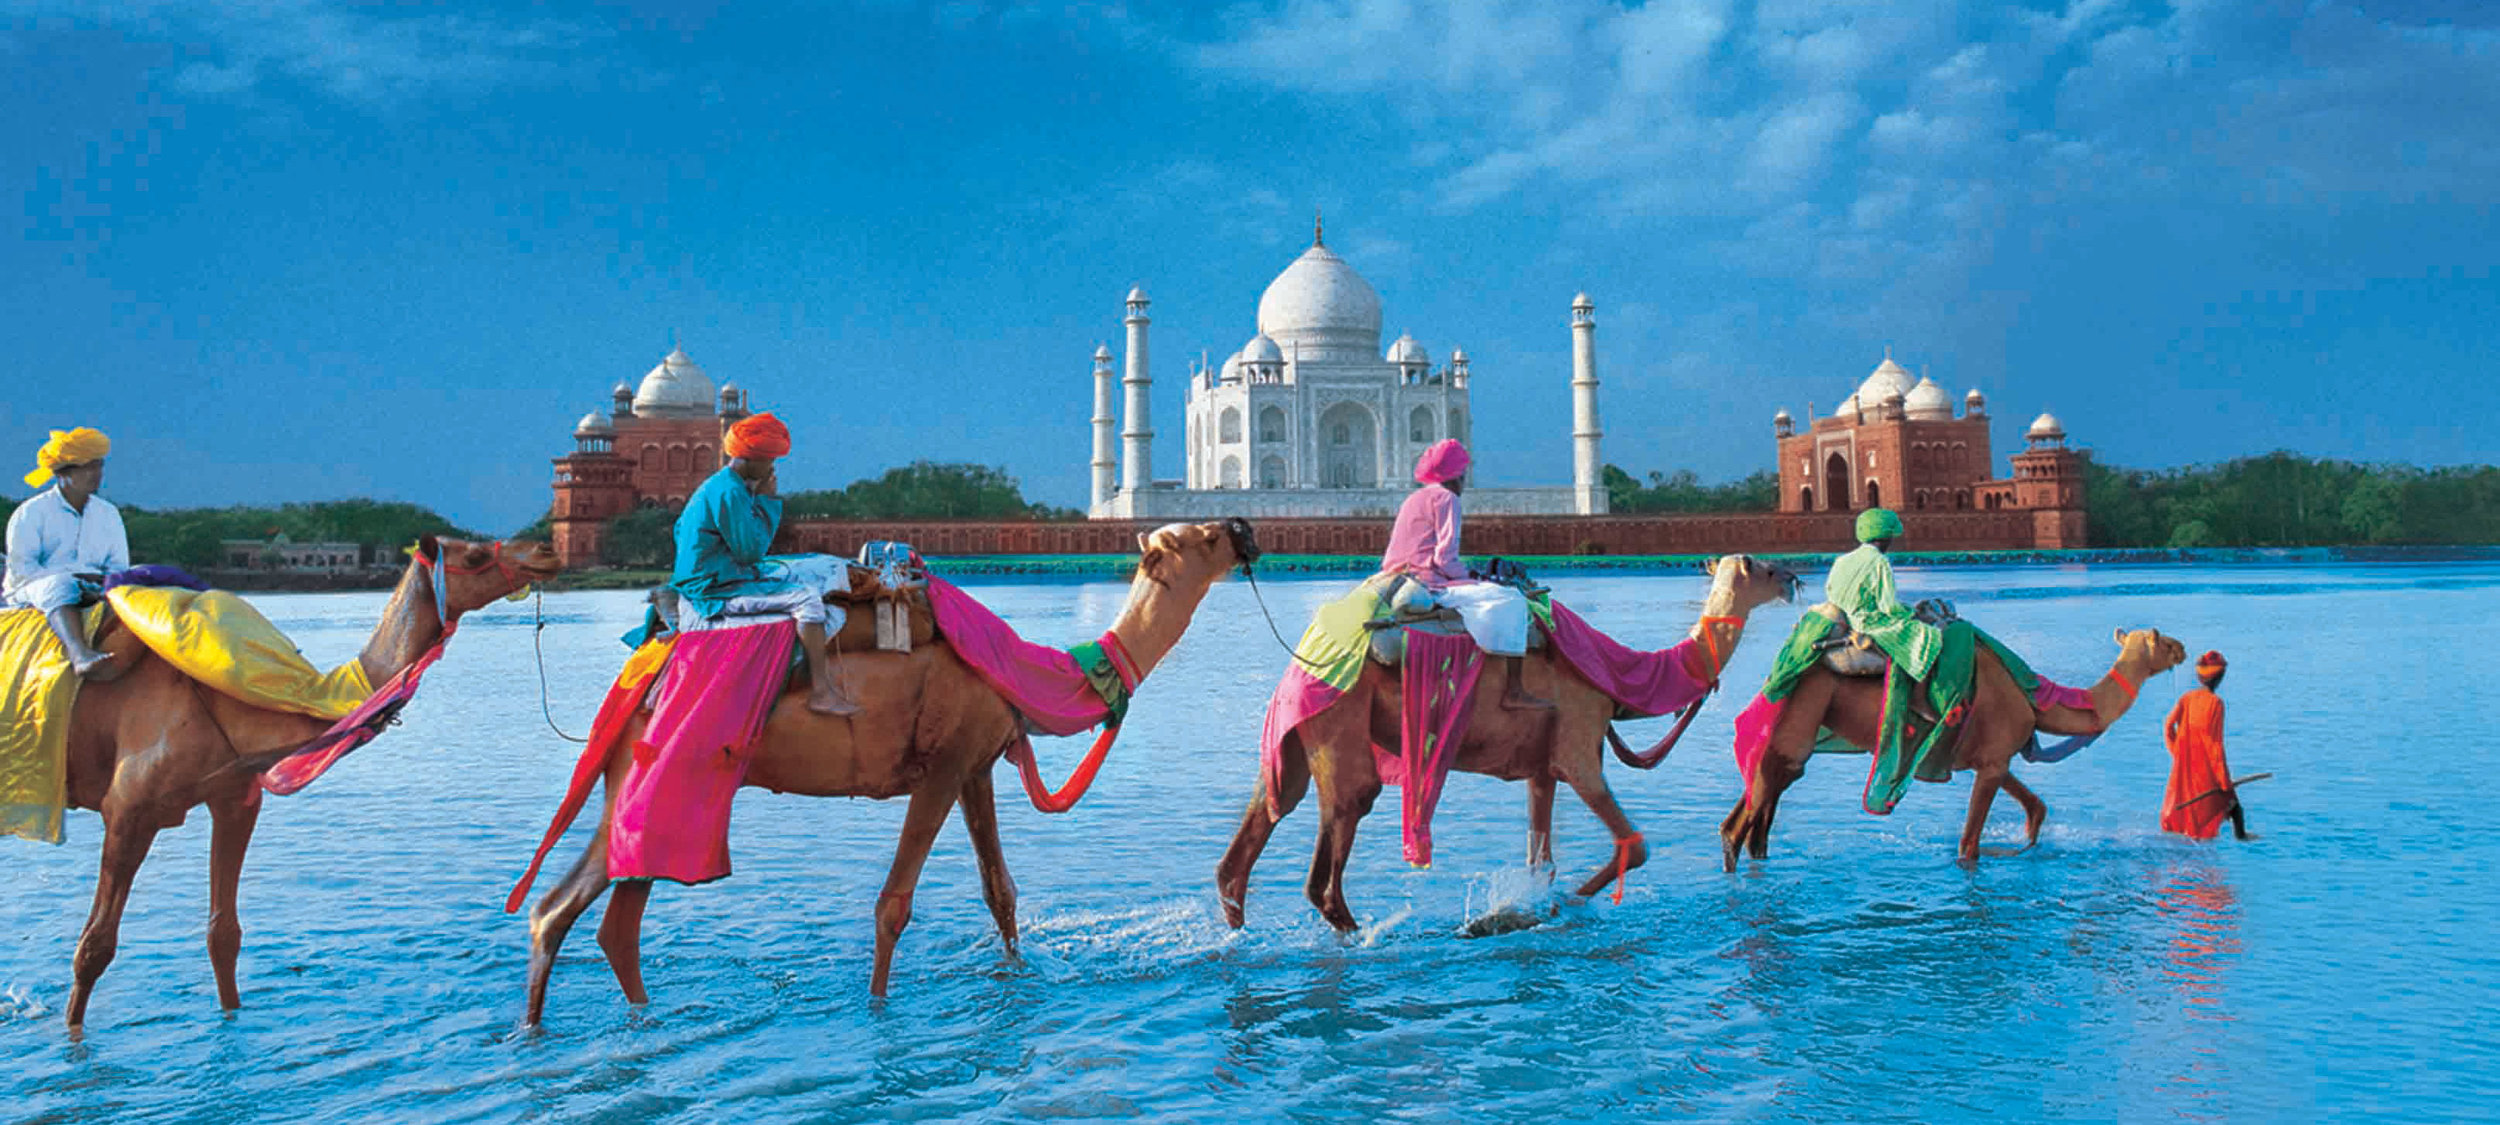 incredible INDIA - Fancy escaping more than the country this season? Try flying into a totally different world!